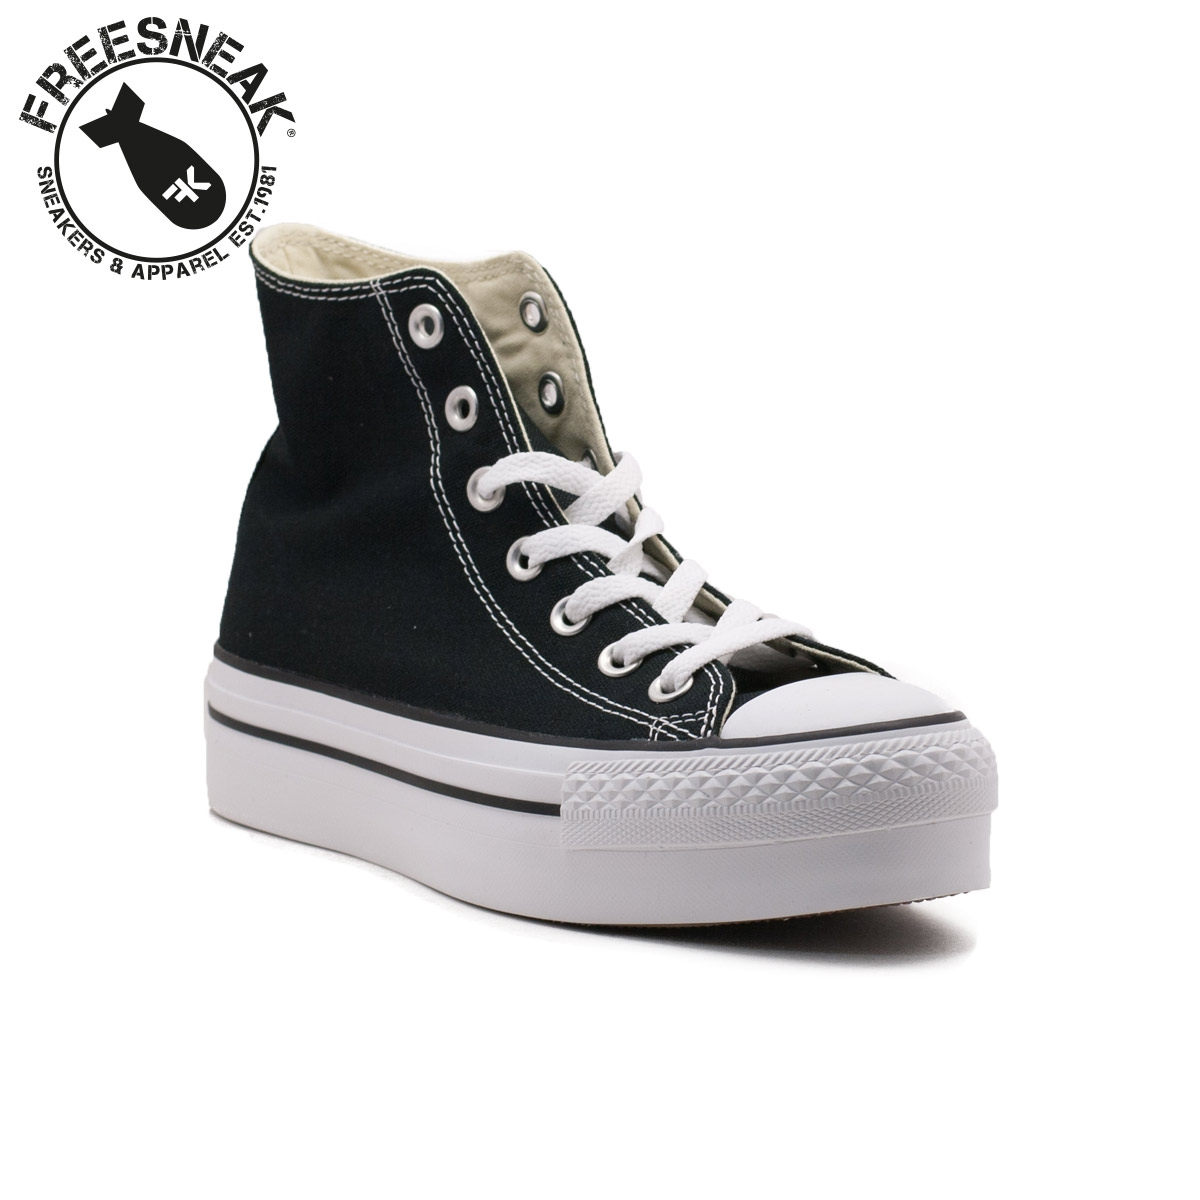 2converse all star alte nere